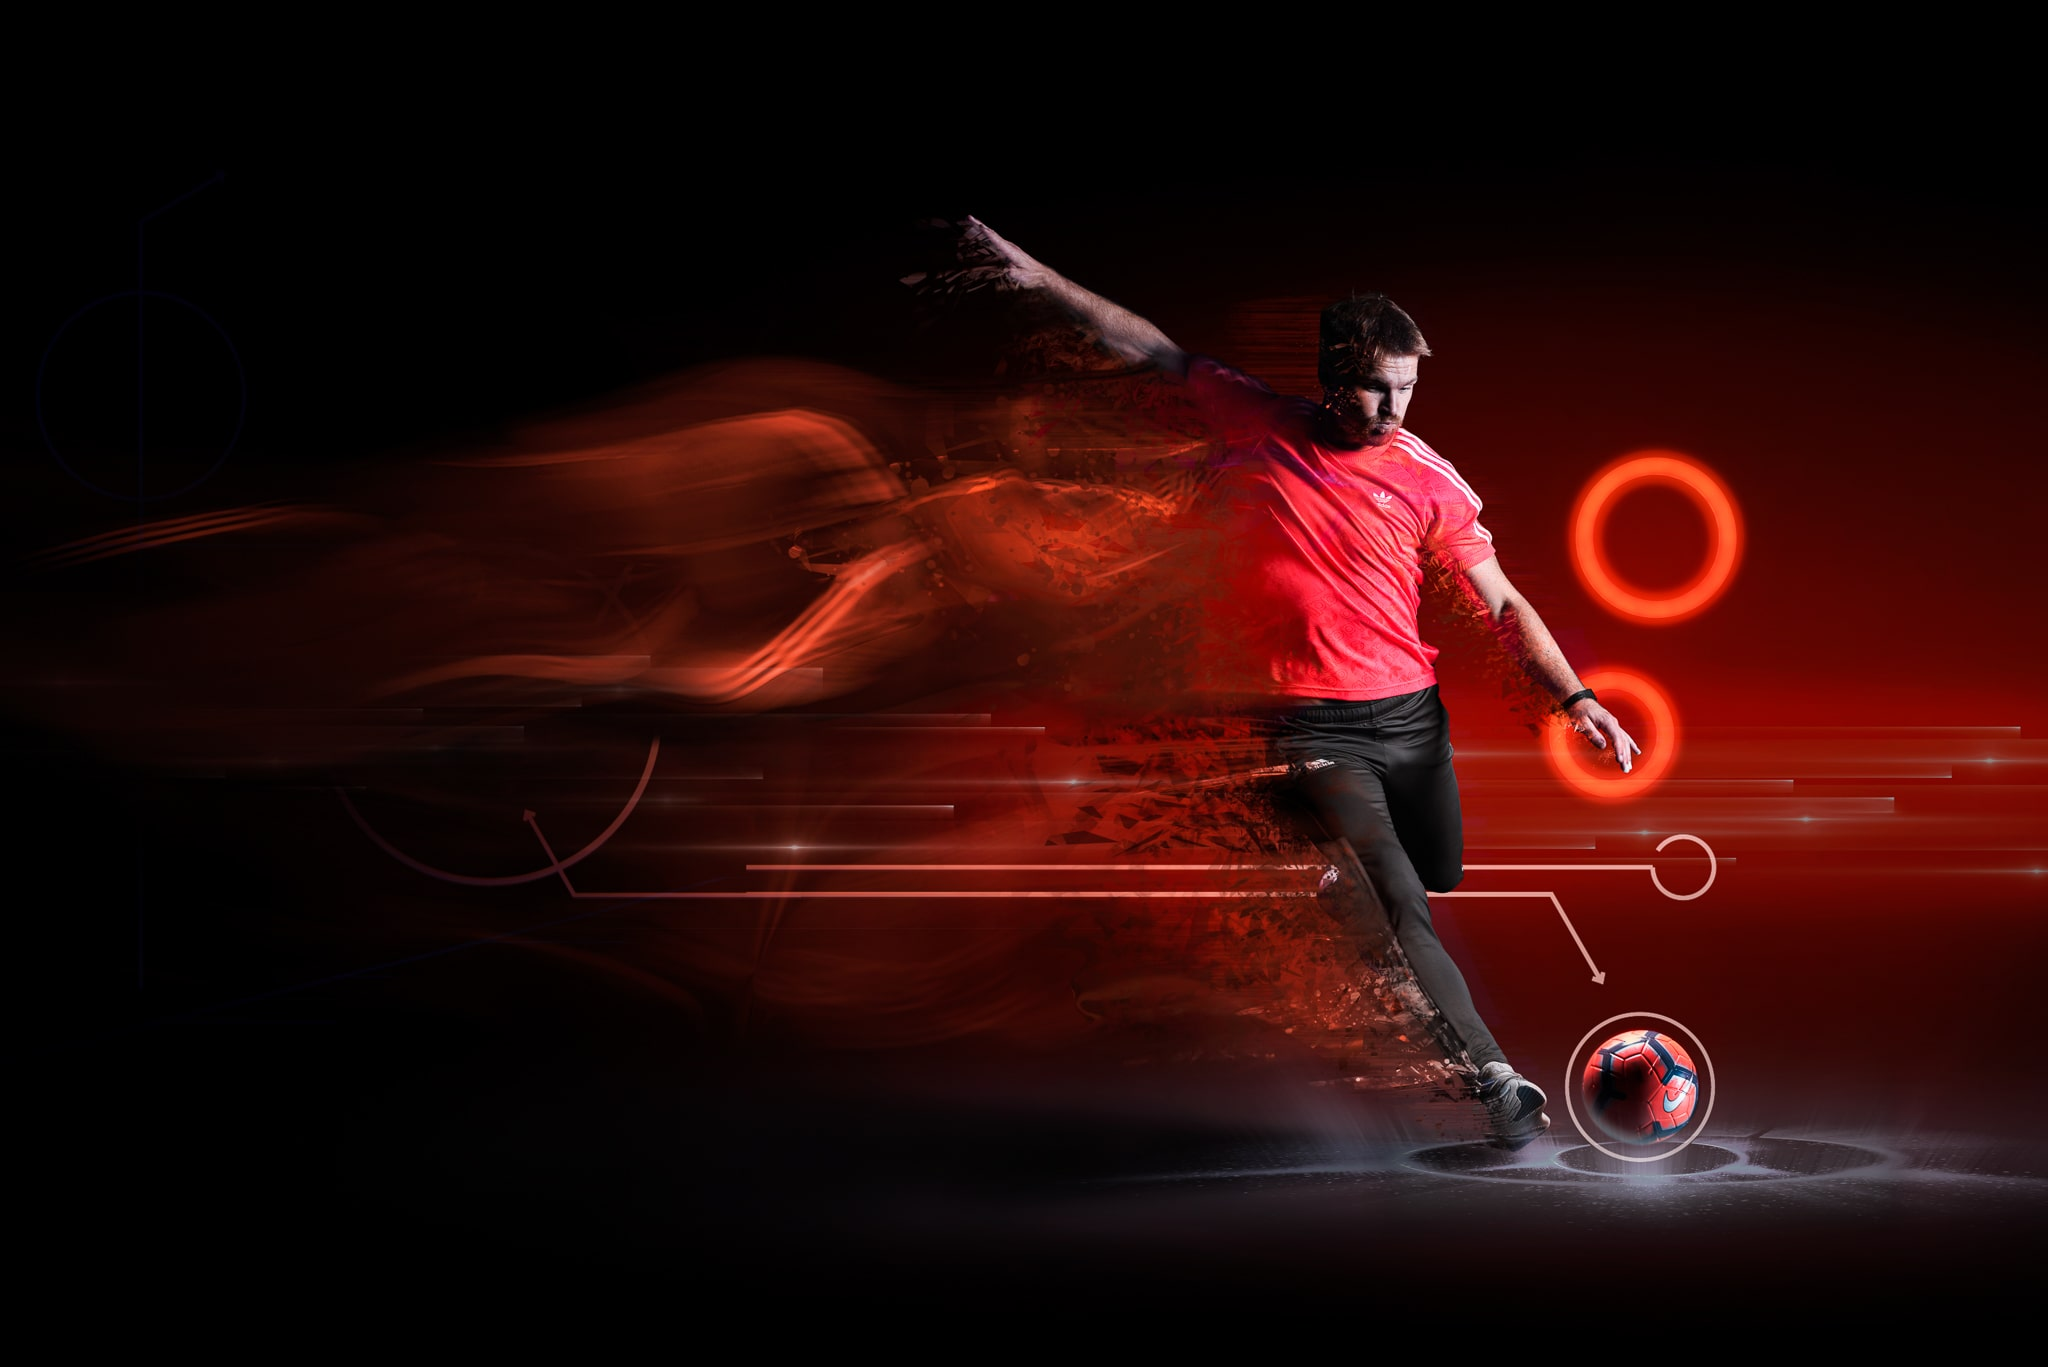 Footballer Kicking Football on Red Circle Background